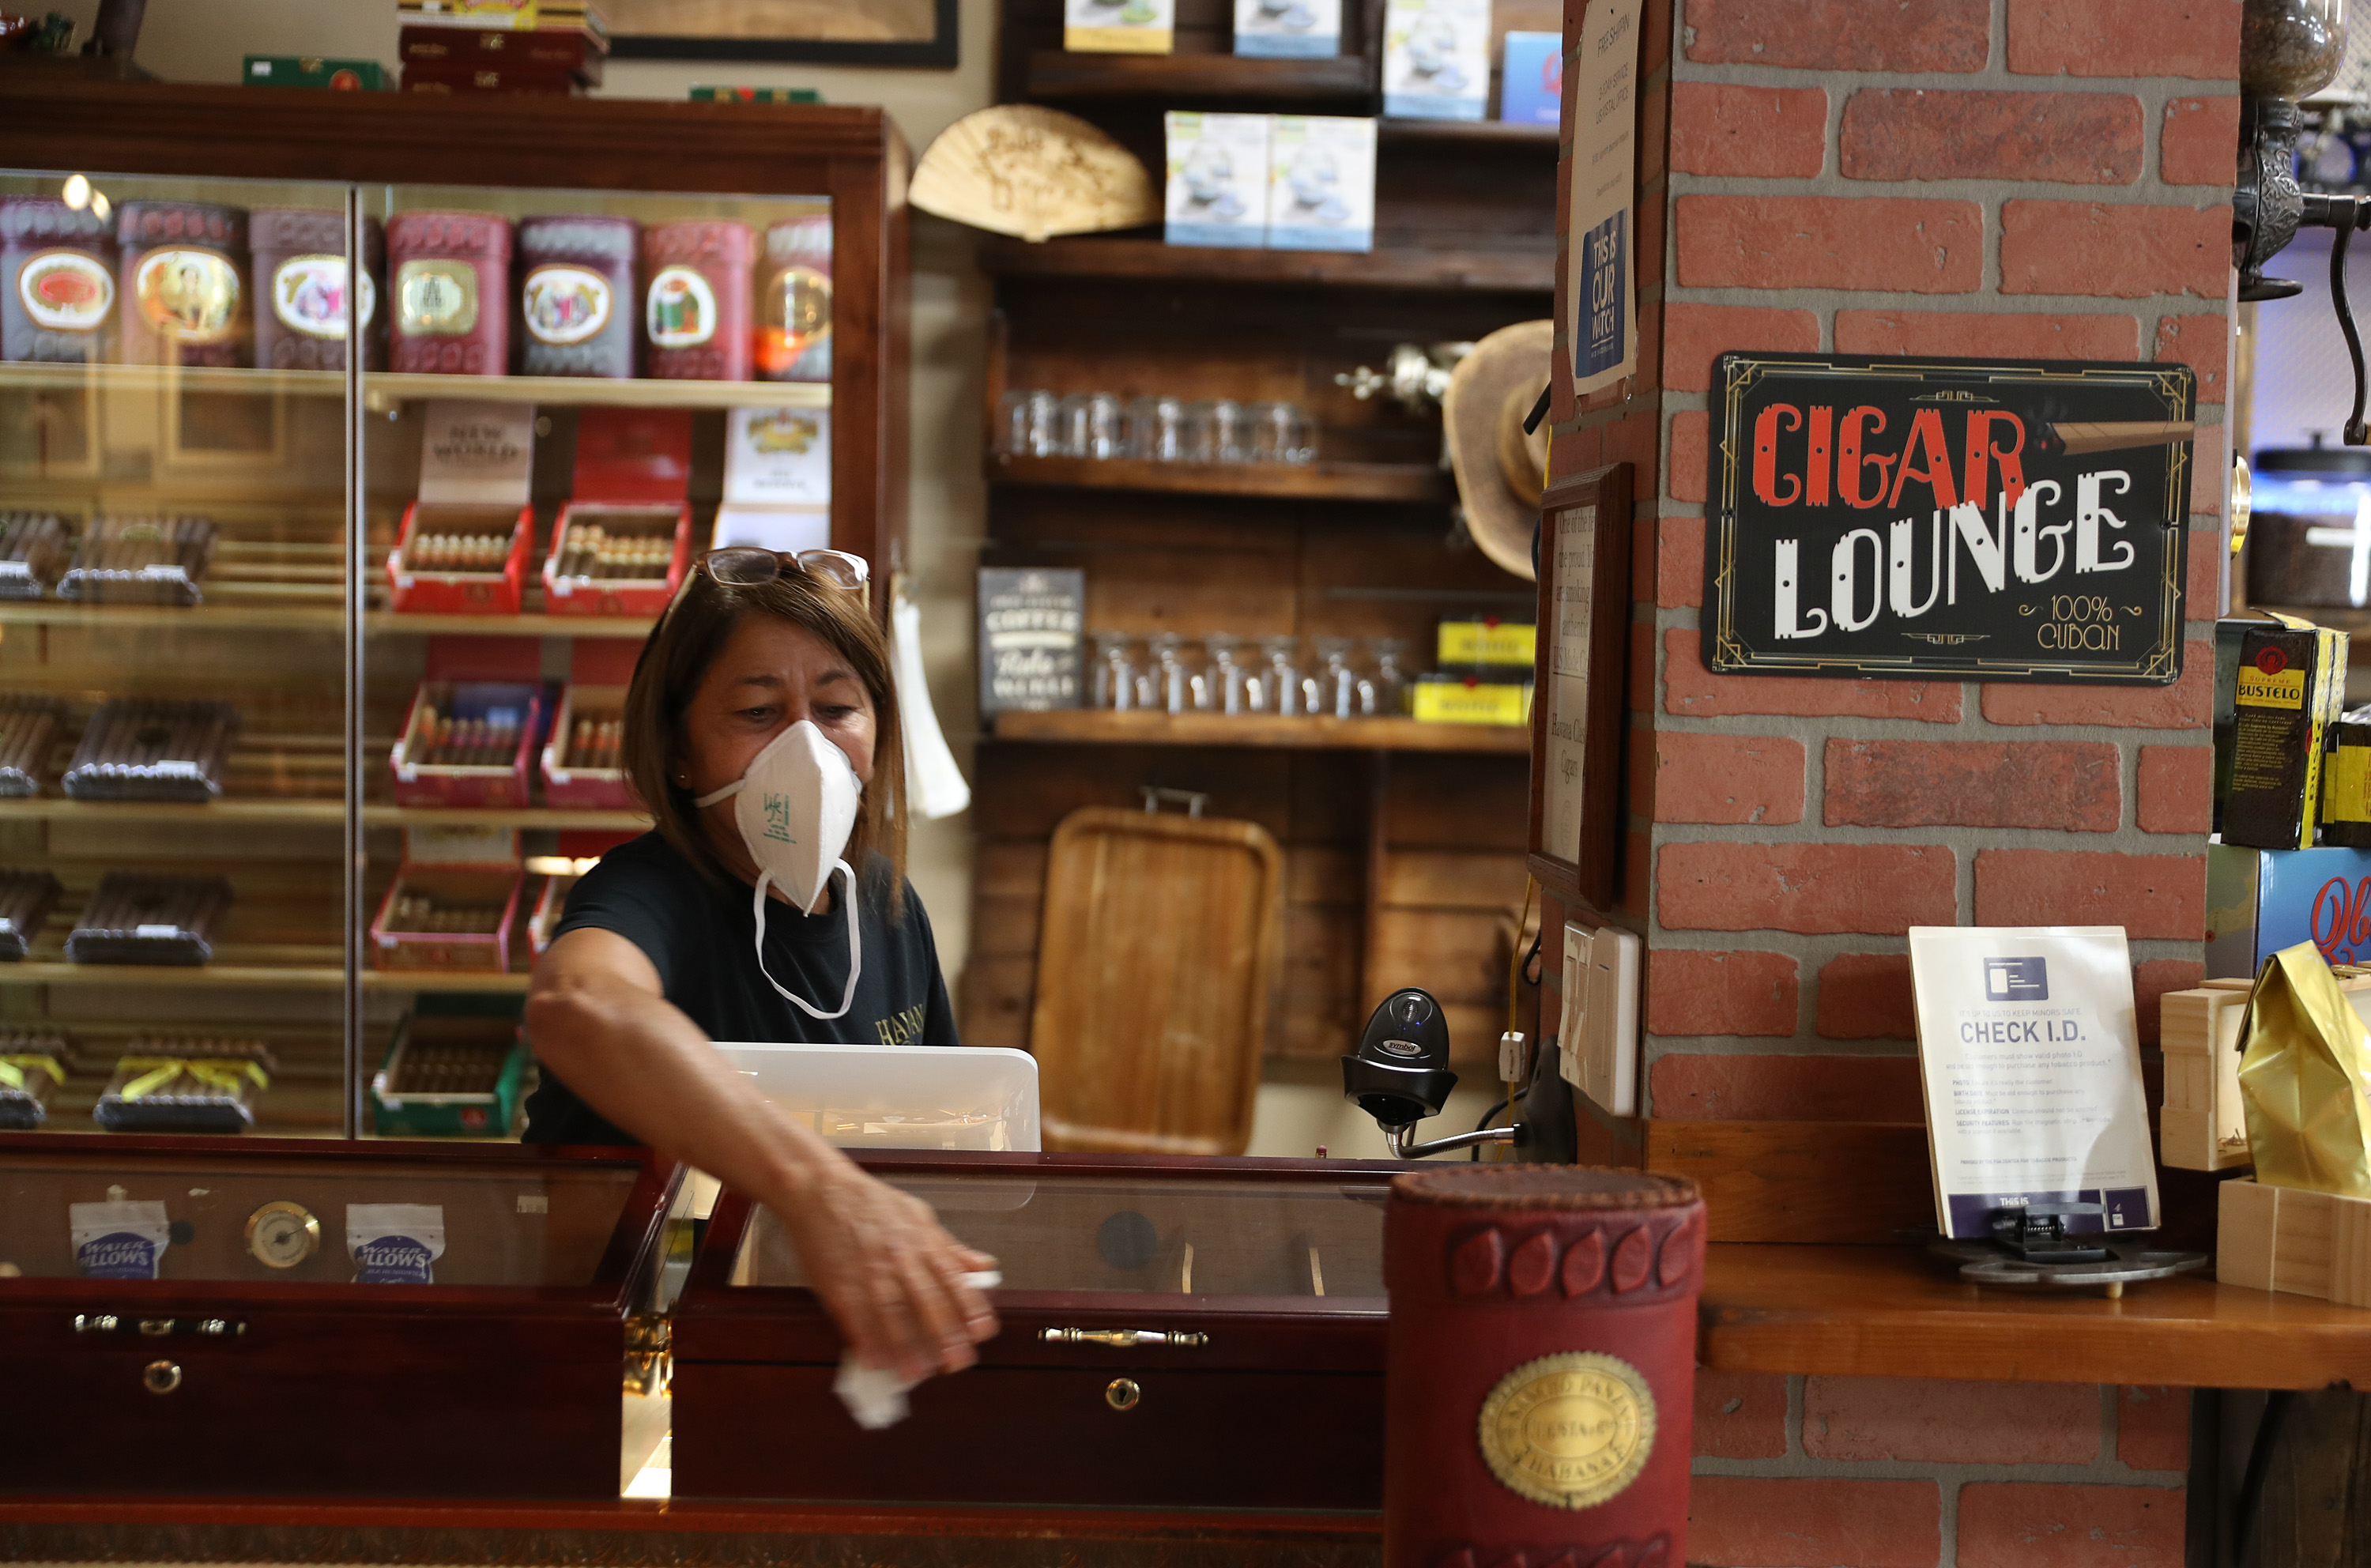 Vilma Perez uses sanitizer wipes to wipe down a counter as she helps prepare to open the Havana Classic cigar shop on May 19, 2020 in Miami, Florida. (Photo by Joe Raedle/Getty Images)